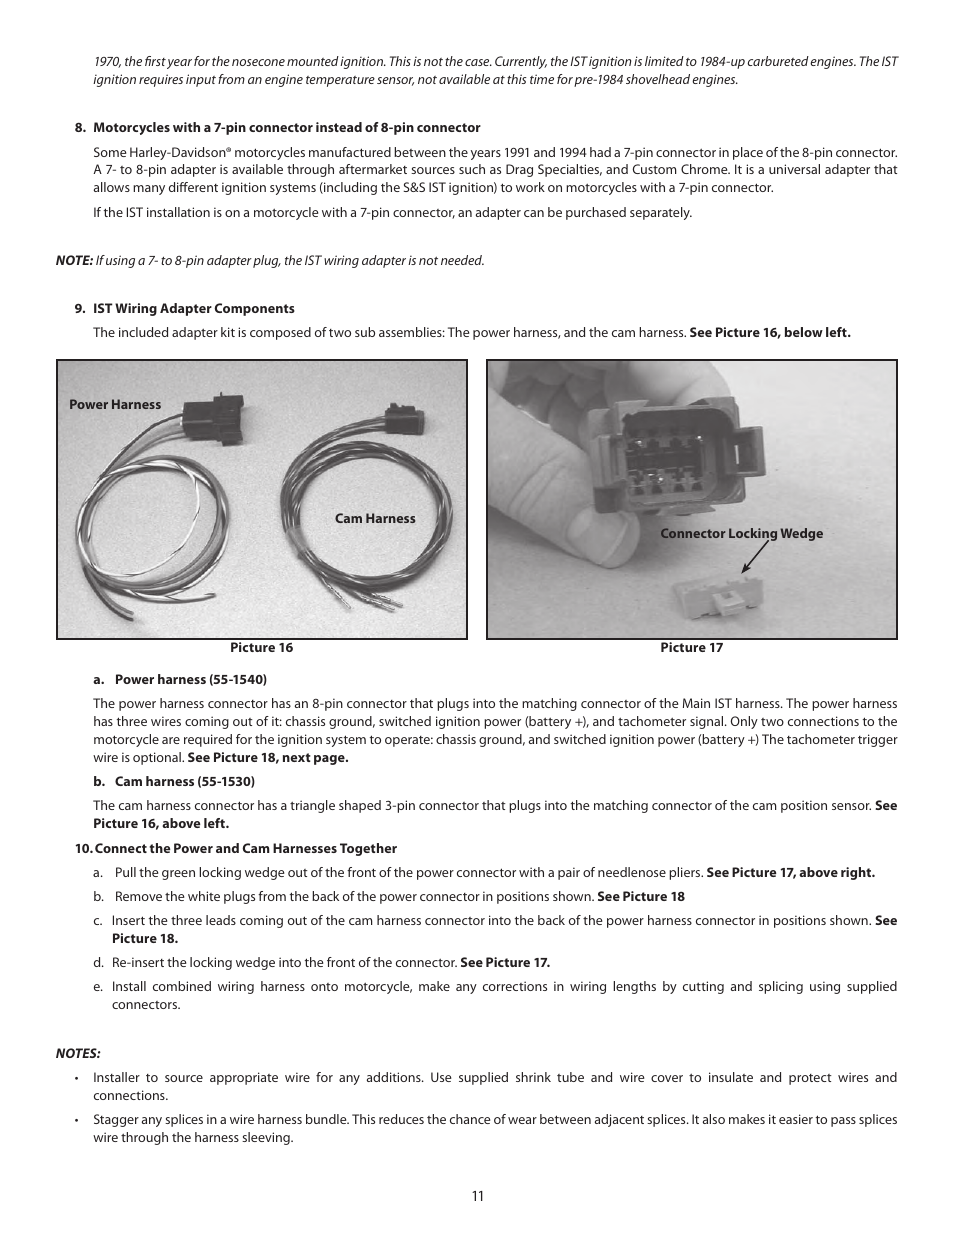 Ss Cycle Ist Ignition System For 1984 1999 Big Twin And Custom Motorcycle Wiring Harness Connectors Applications User Manual Page 11 17